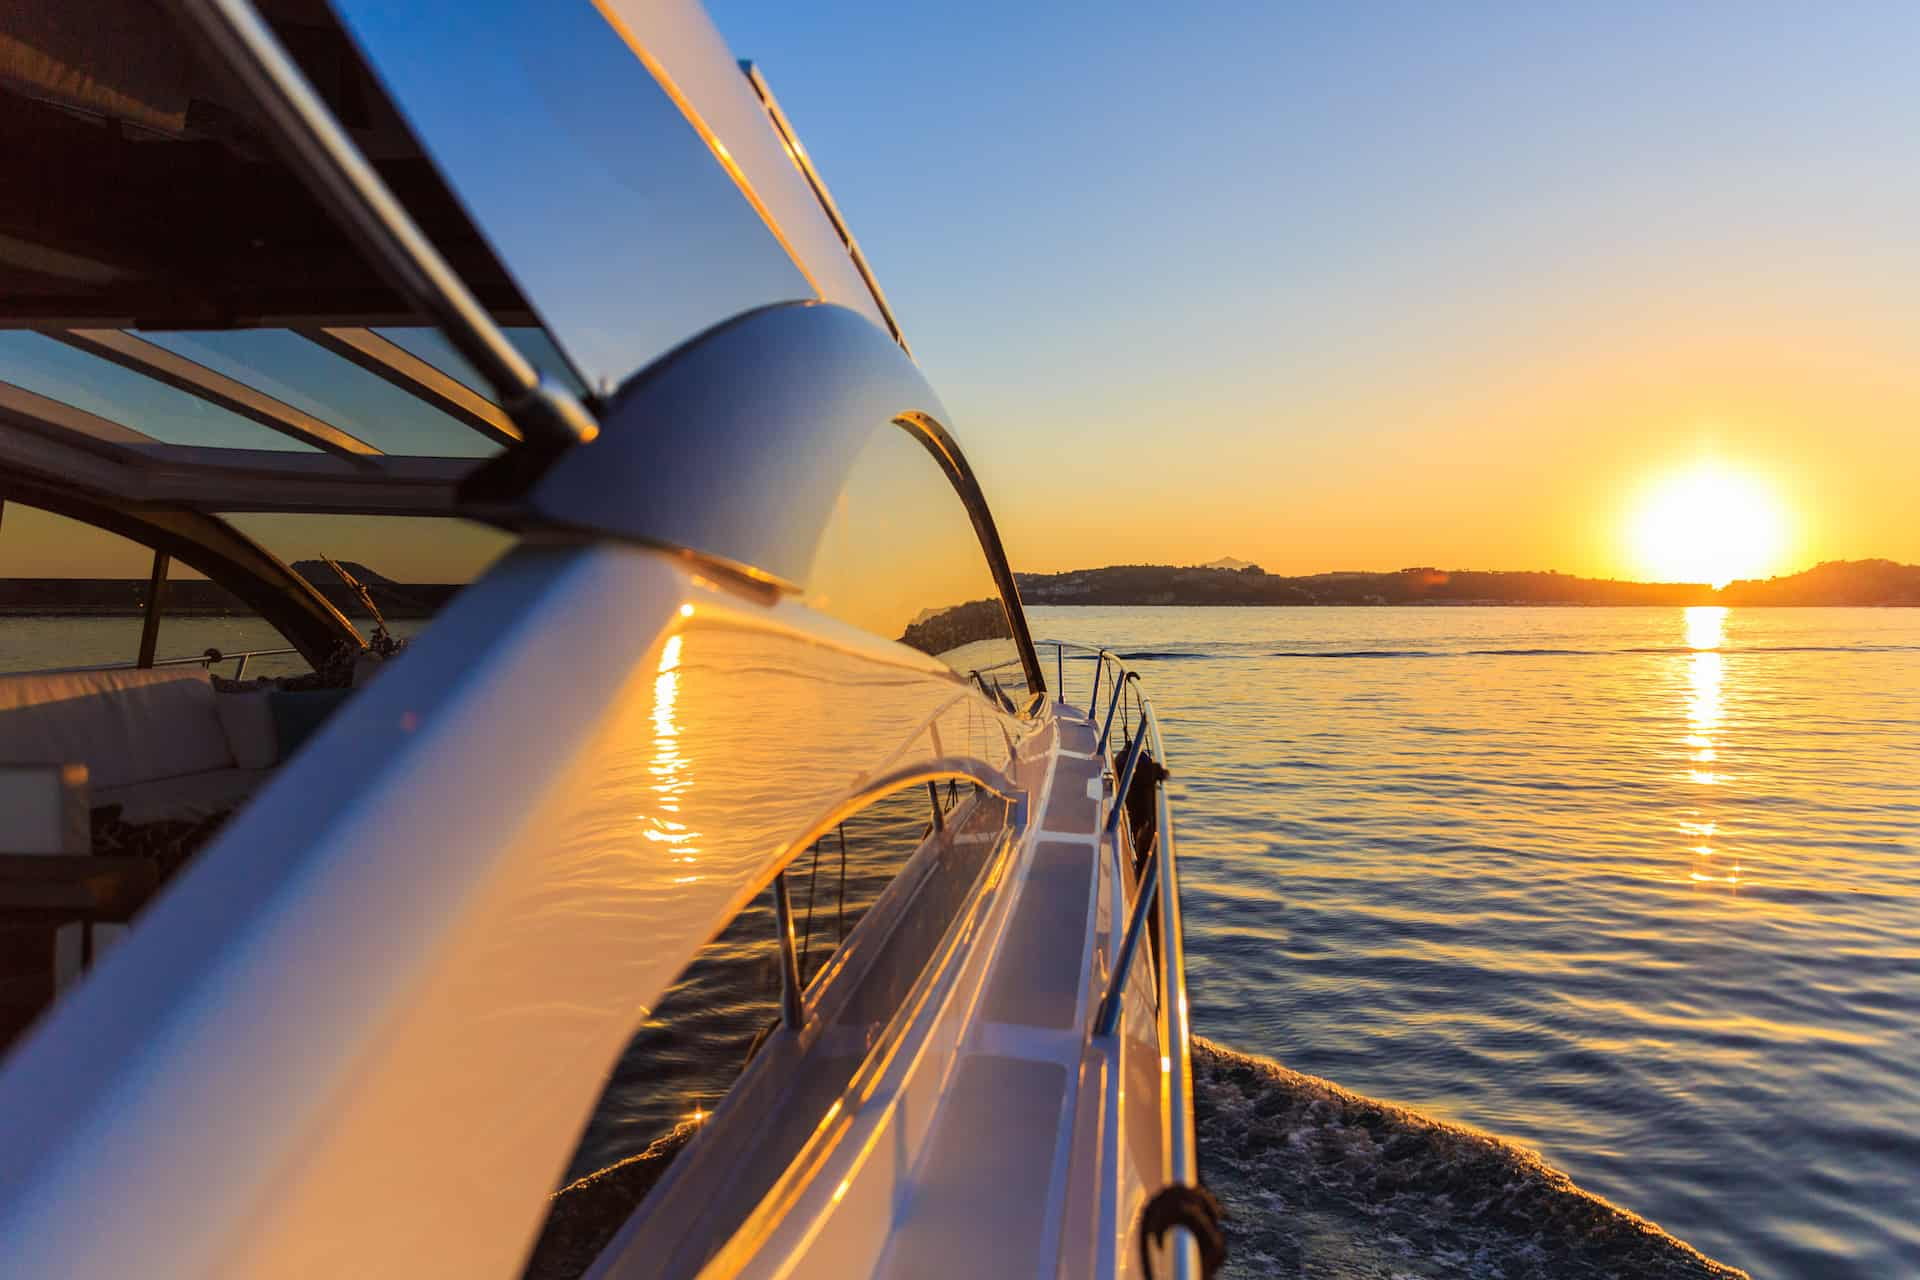 Sunset from a Luxury Motor Yacht